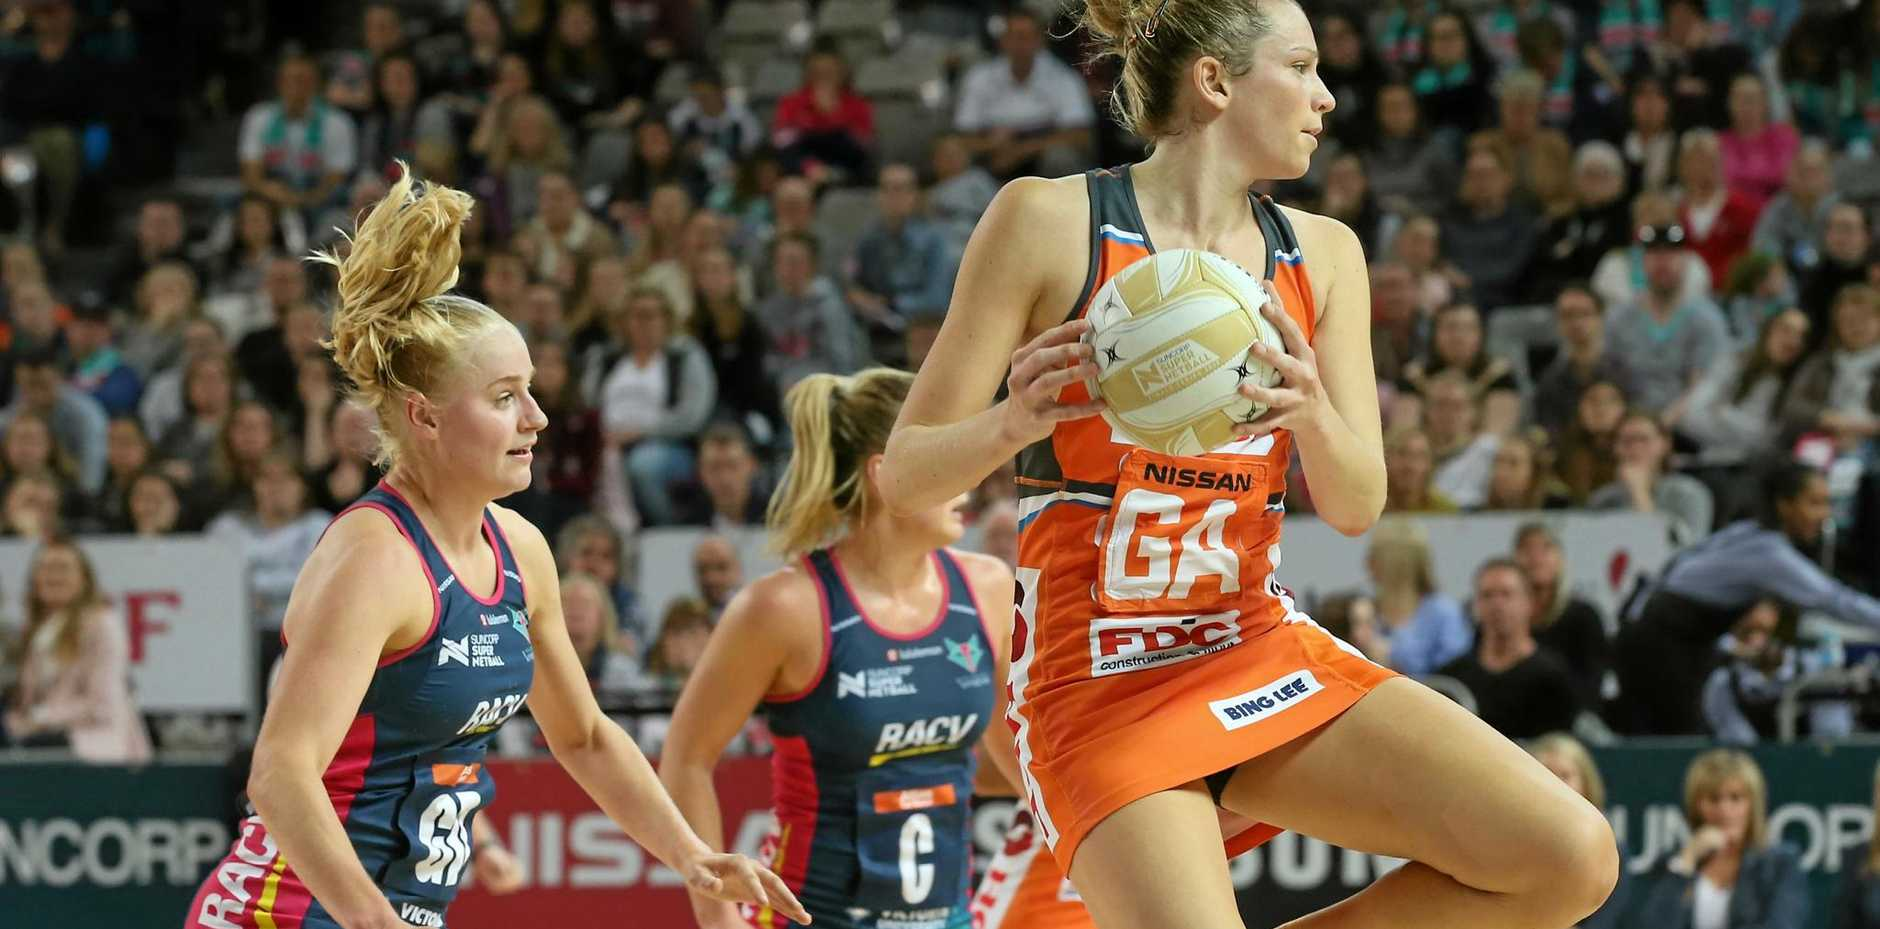 GRAND FINAL BOUND: The Giants' Jo Harten in action in the side's win over the Vixens in Melbourne.  The Giants will go on to play the Sunshine Coast Lightning in the final.